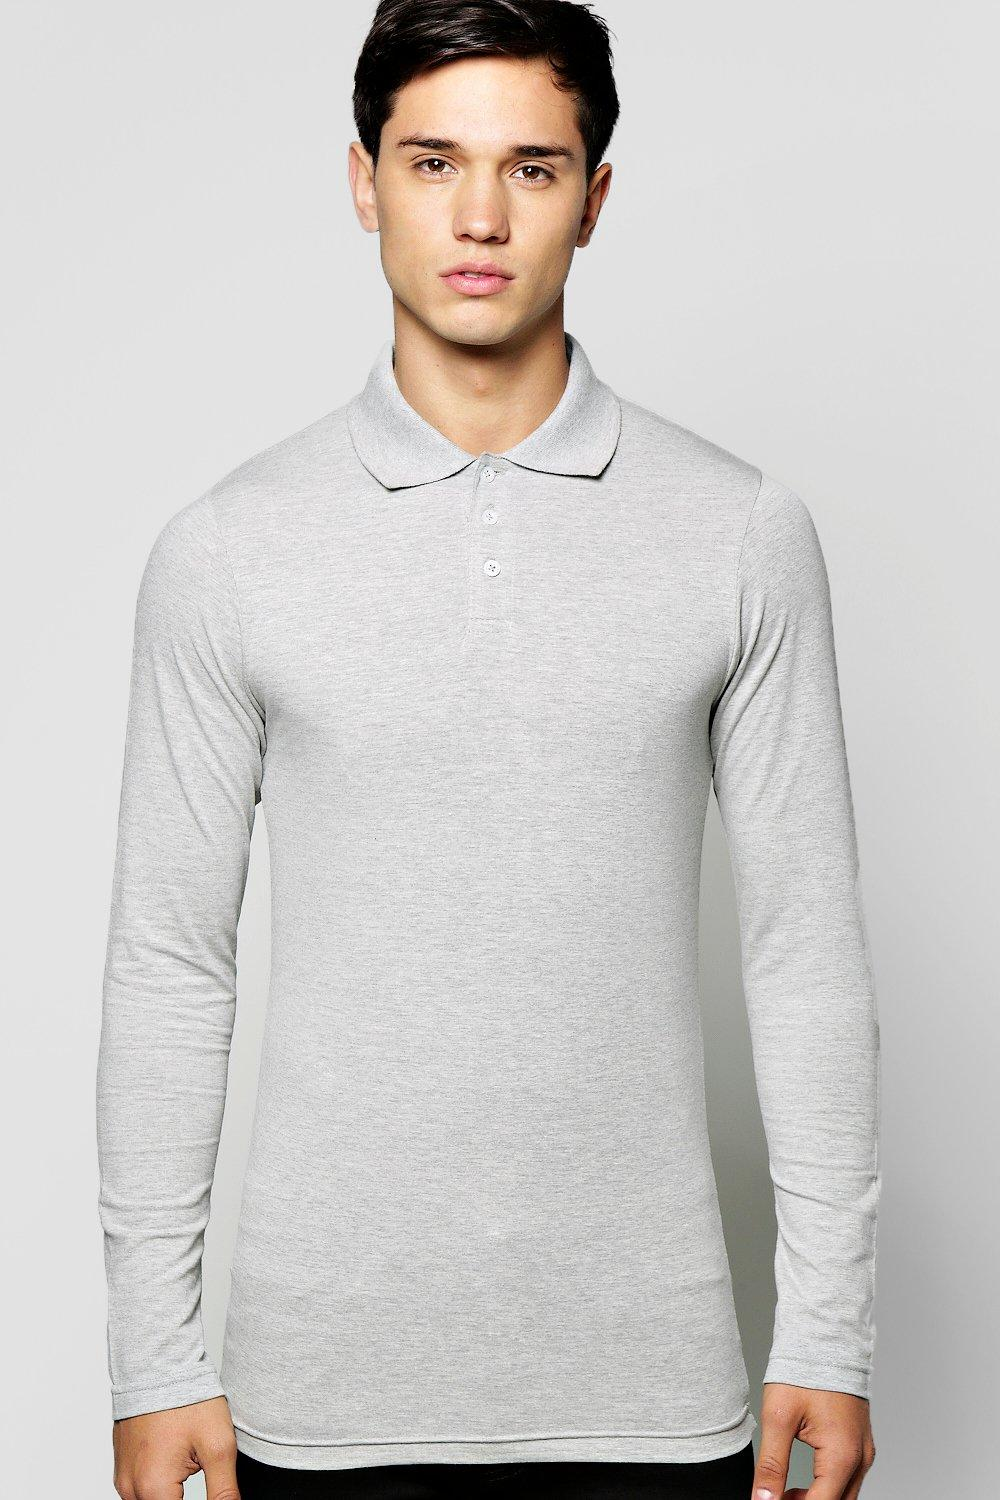 833a17a2 Mens Grey Long Sleeve Muscle Fit Polo. Hover to zoom